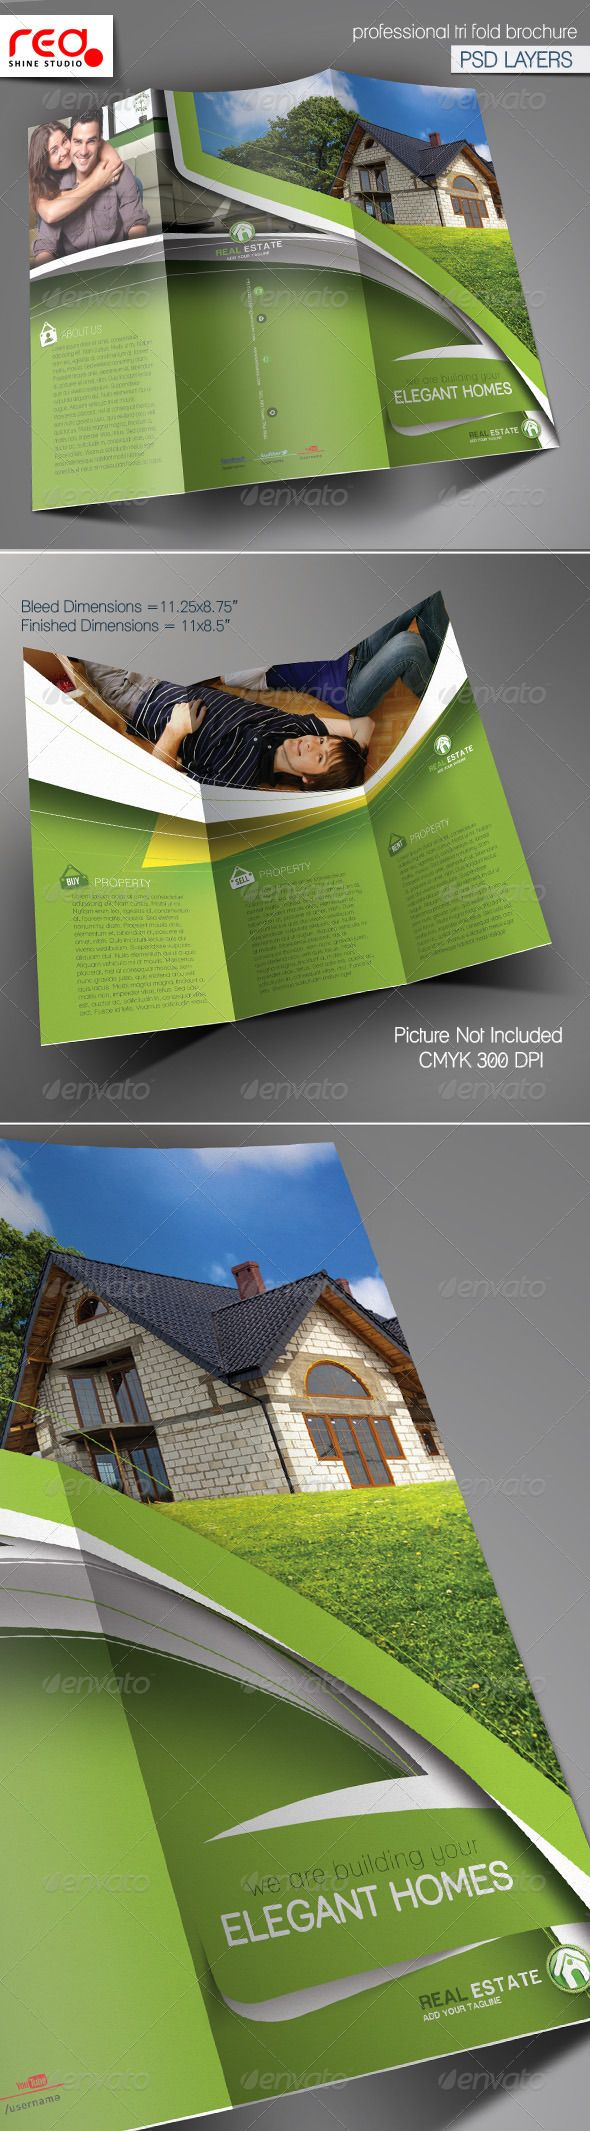 Real Estate Trifold Brochure Template Brochure Template - Real estate tri fold brochure template